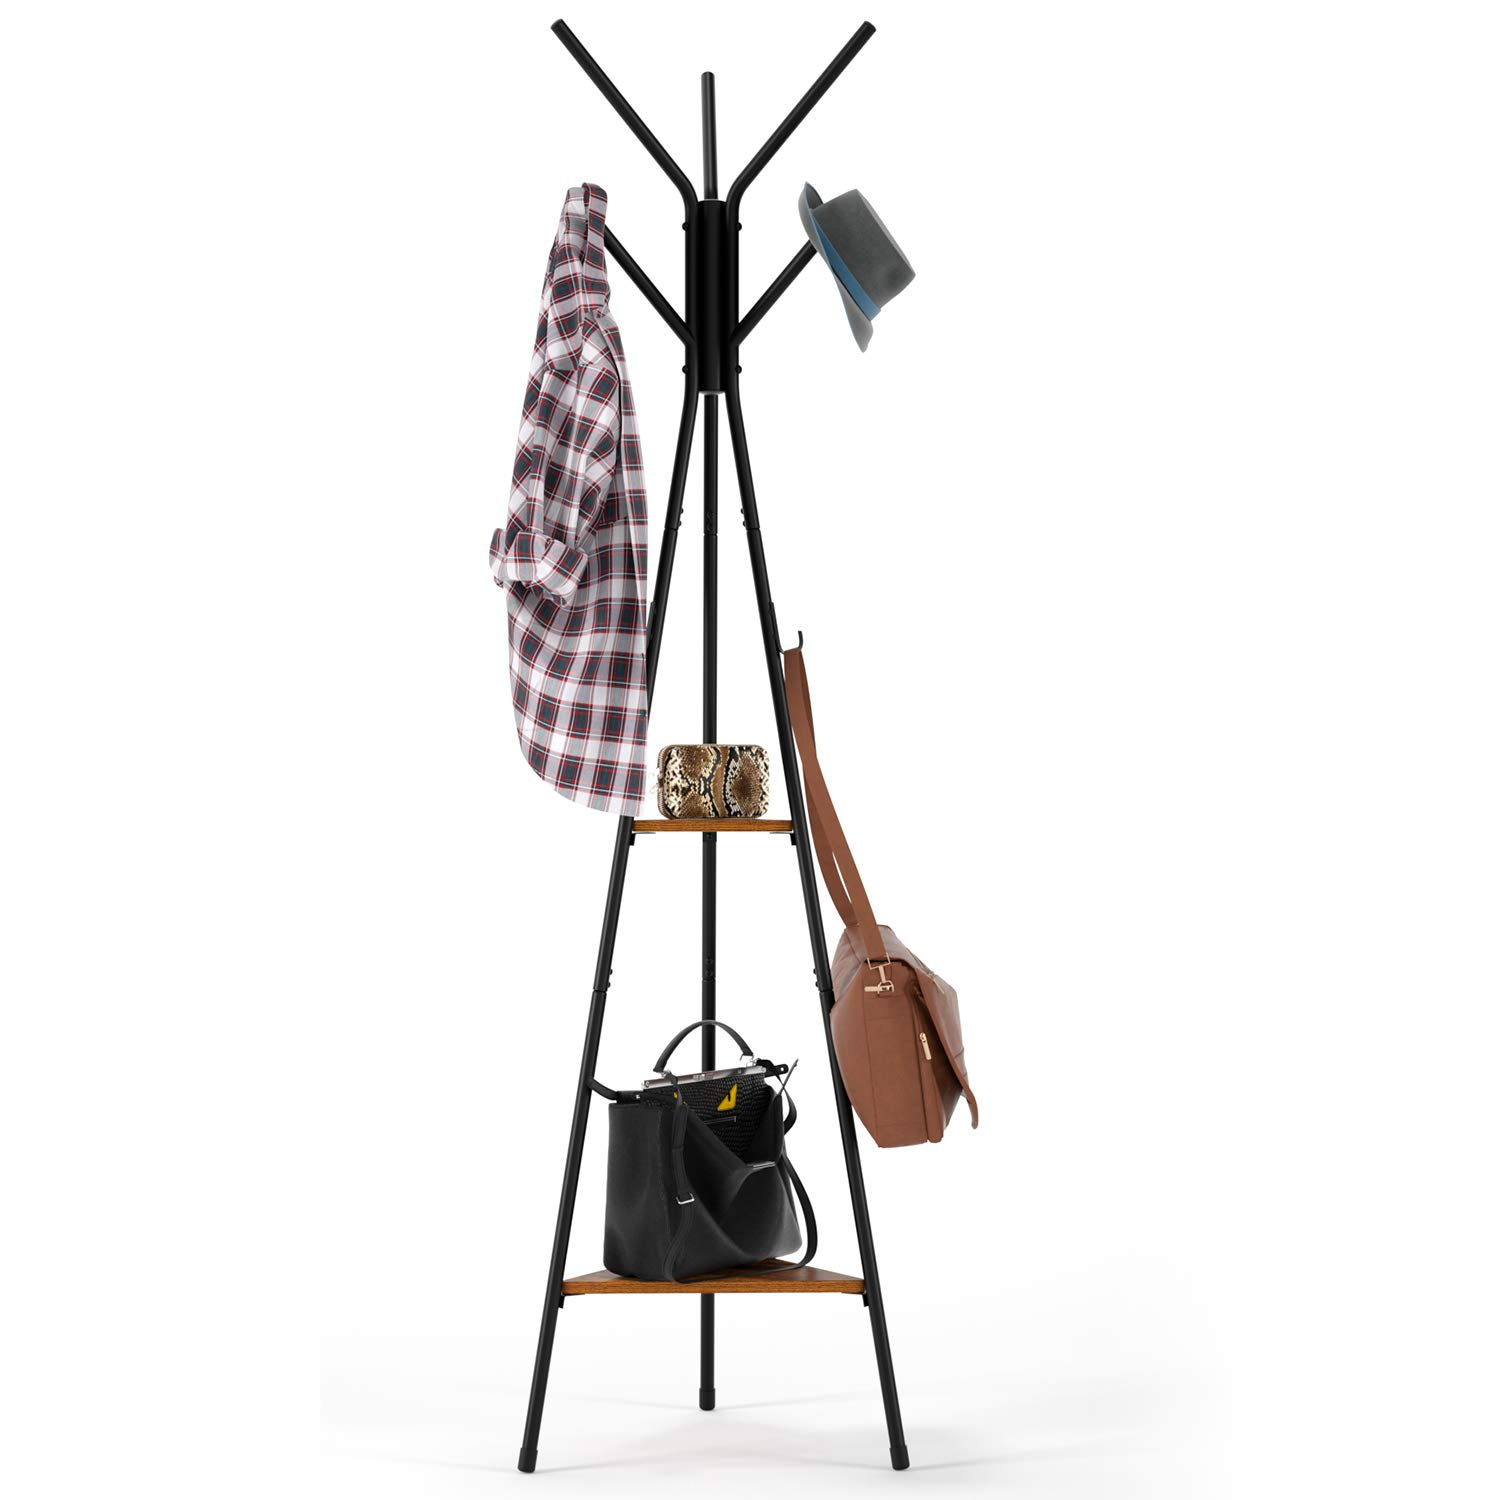 Homfa Coat Rack Stand 71 inch with 9 Hooks and 2-Tier Storage Shelves, Free Standing Industrial Hall Tree Clothes Hanger for Hat, Bag, Accent Metal Frame Vintage